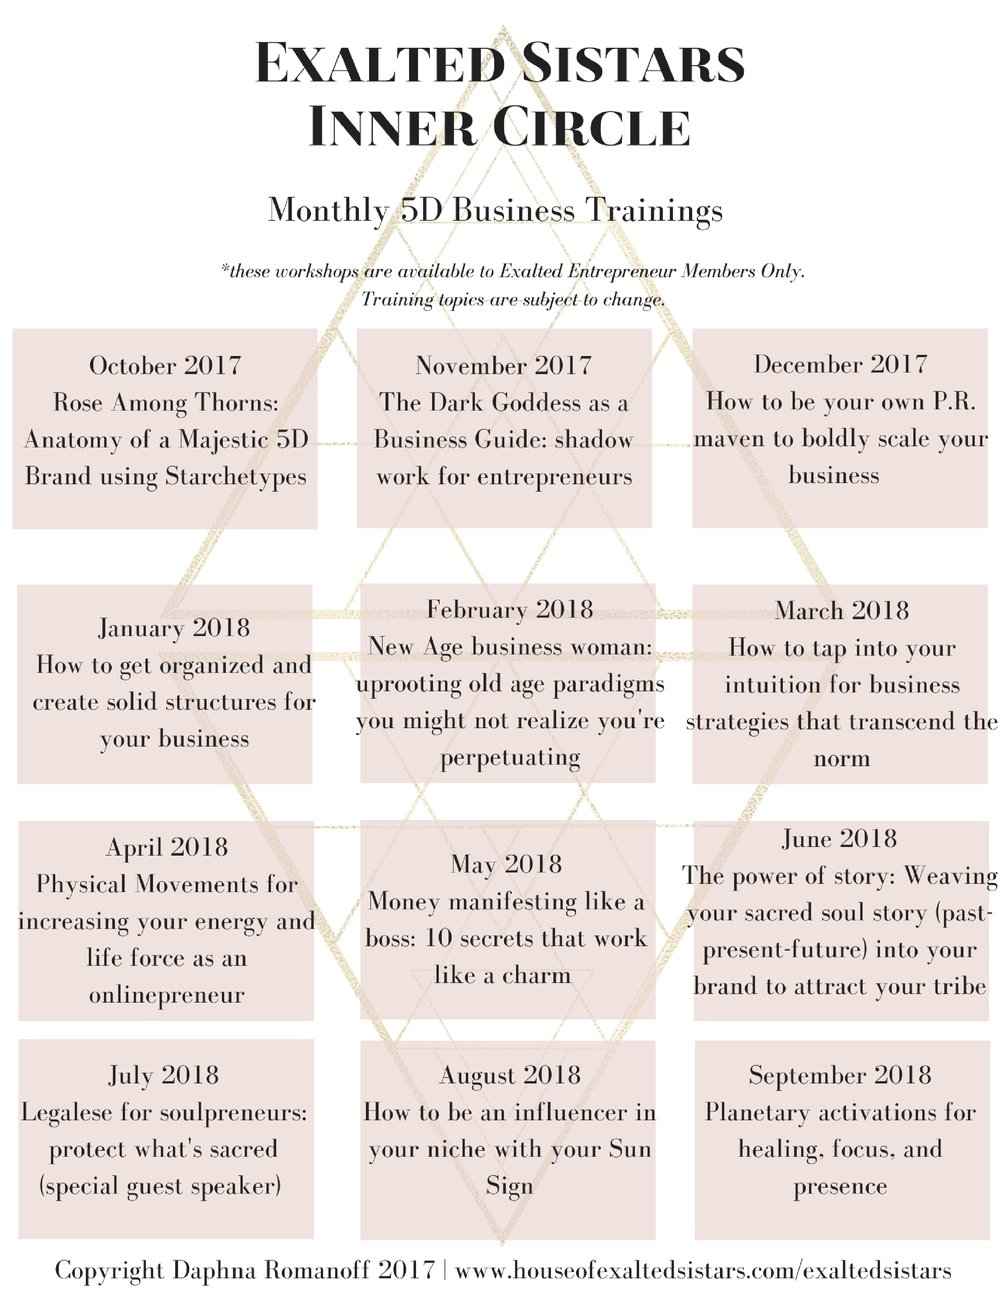 Download the Business Flow trainings schedule